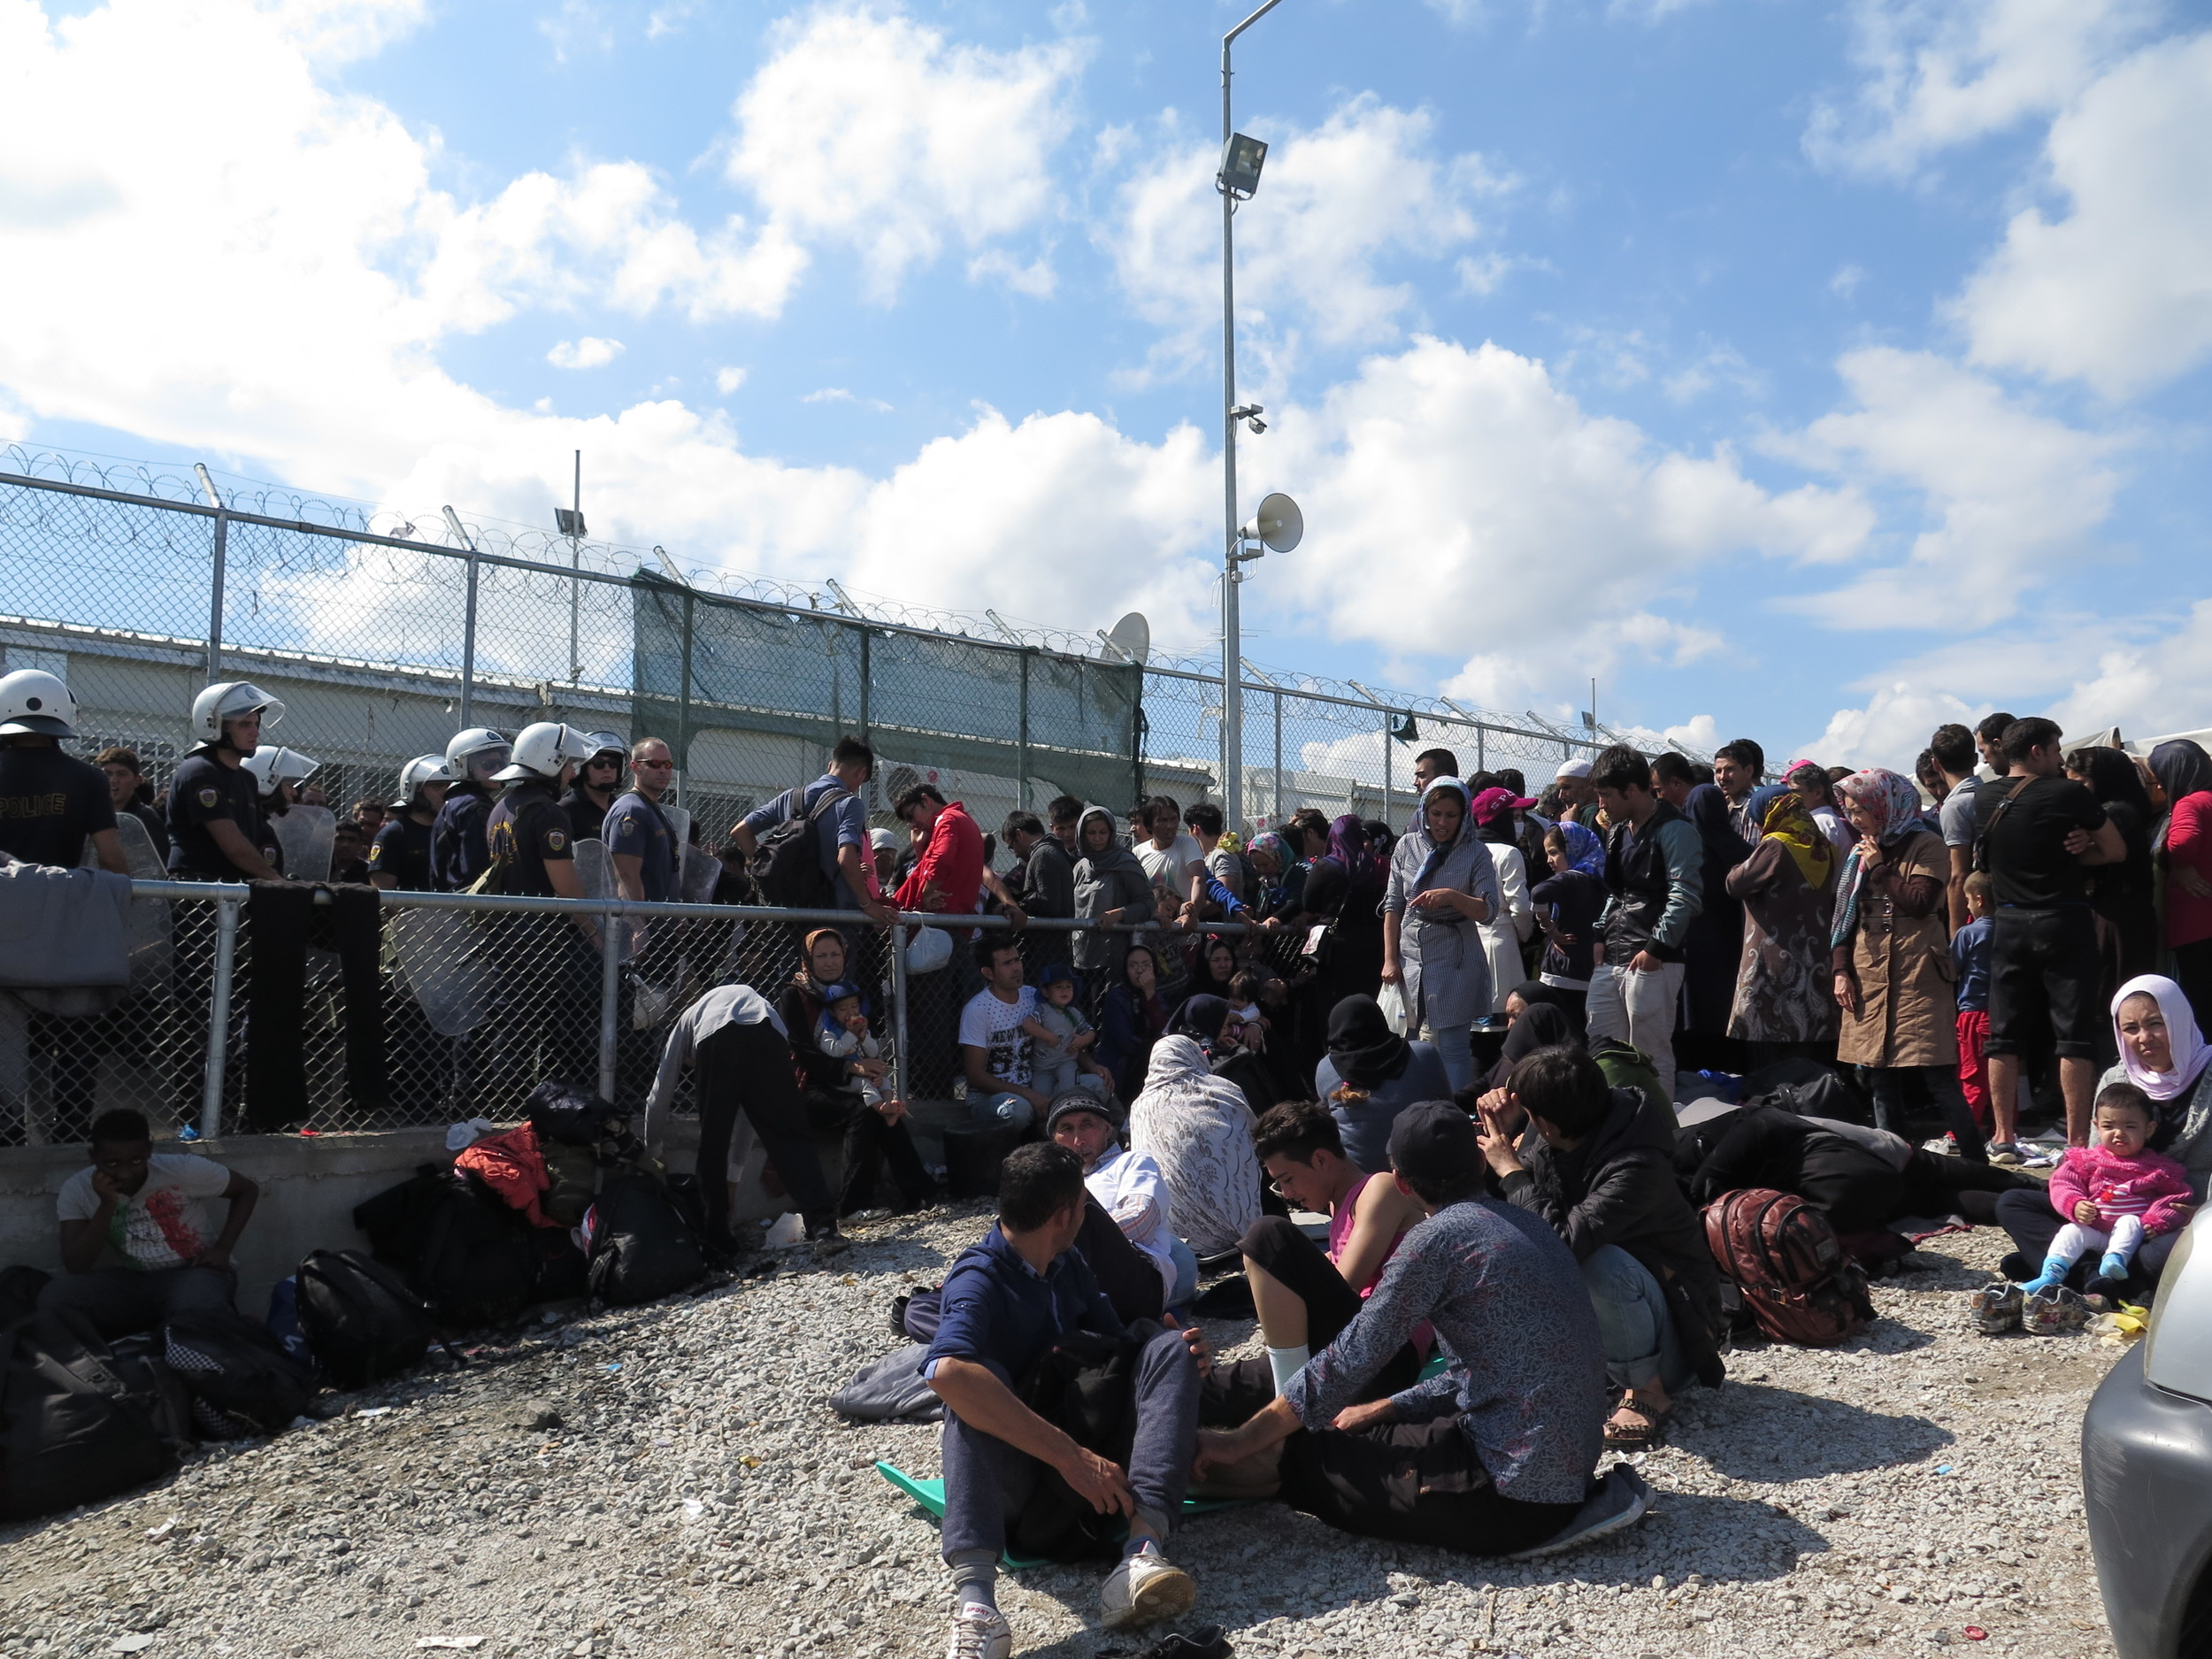 At Moria camp, Greek riot police push back non Syrian refugees from the barbed wire surrounding the registration centre. Here, people wait for hours in the hot sun before they can complete papers (Imogen Wall/IRIN)